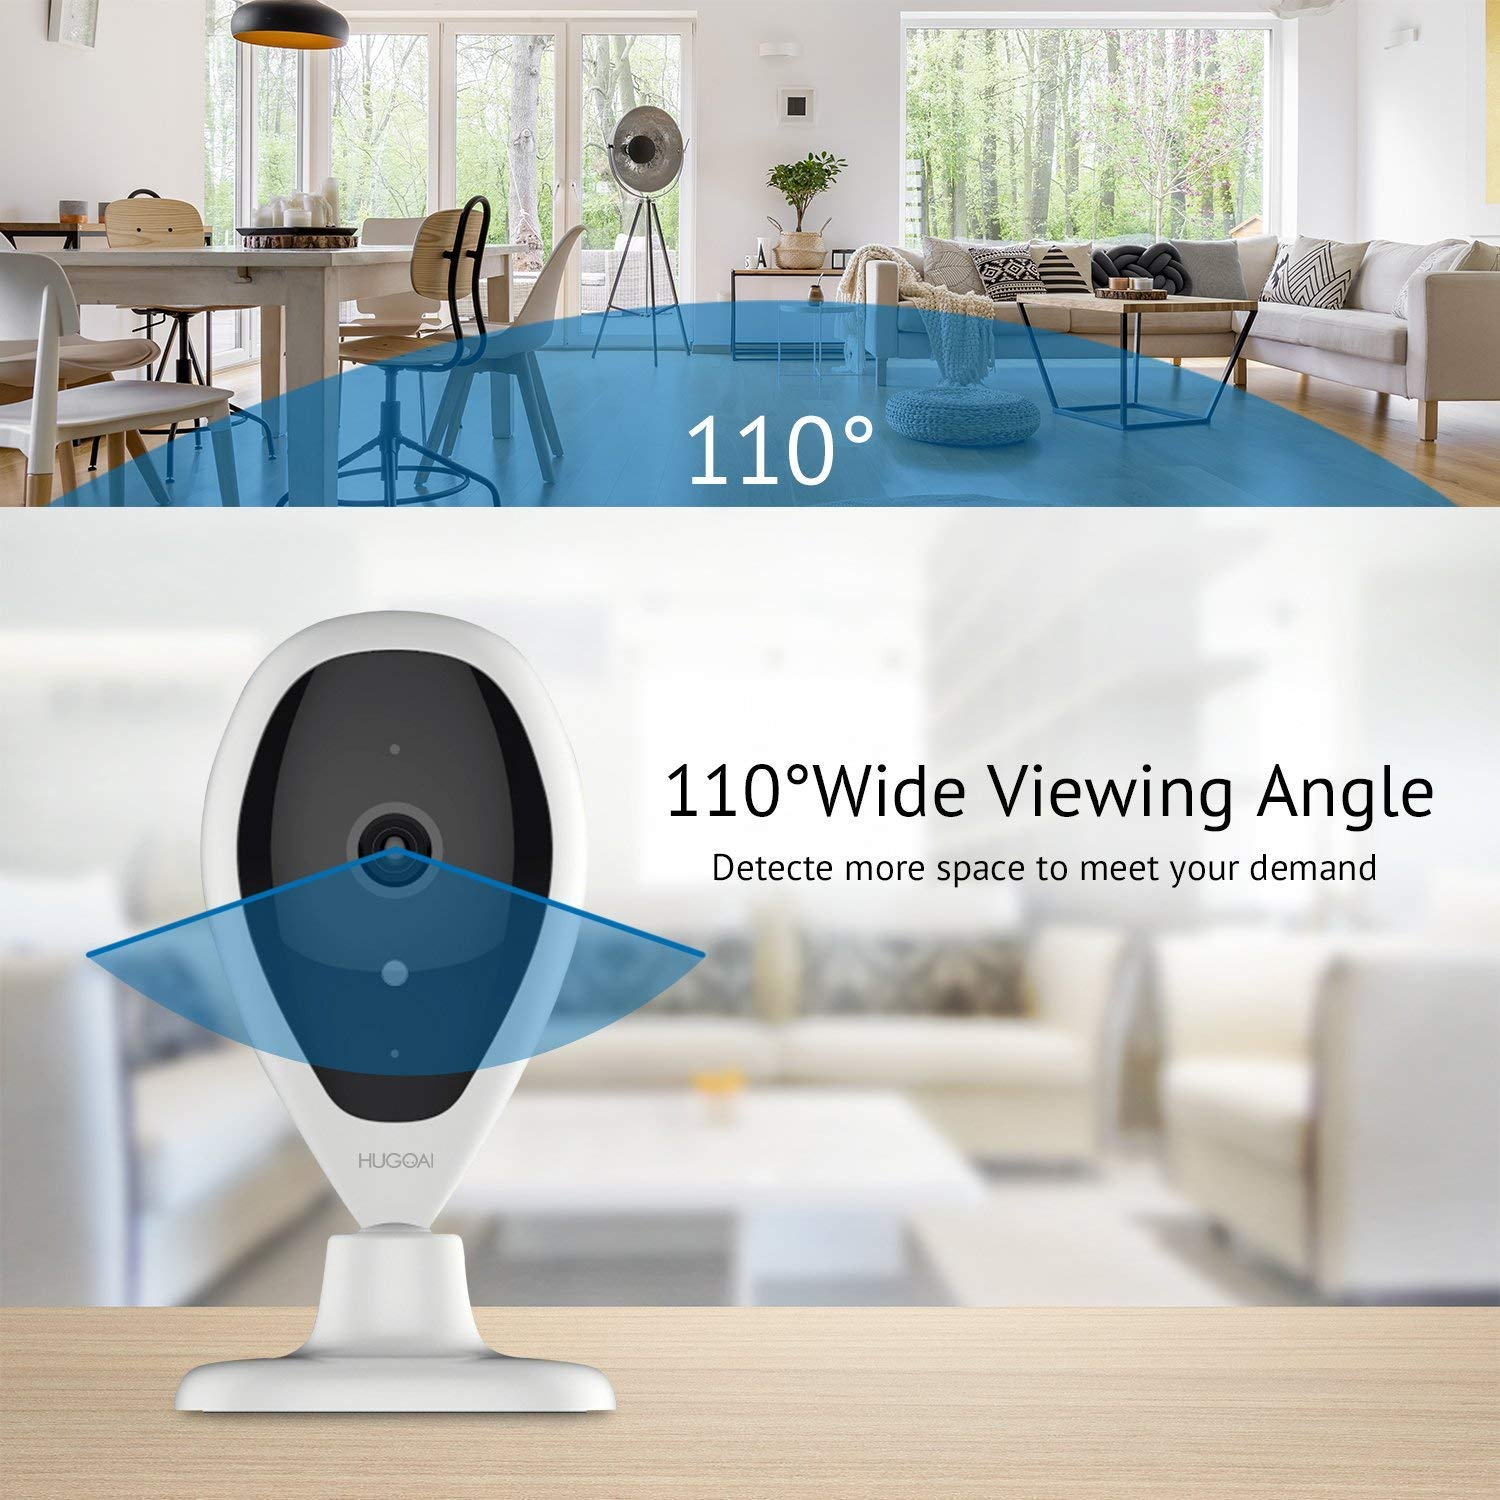 Security IP Camera, HUGOAI WiFi 1080P HD Wireless Home Security  Surveillance Camera with Face Detection, Motion Detection,Night Vision, Two  Way Audio,